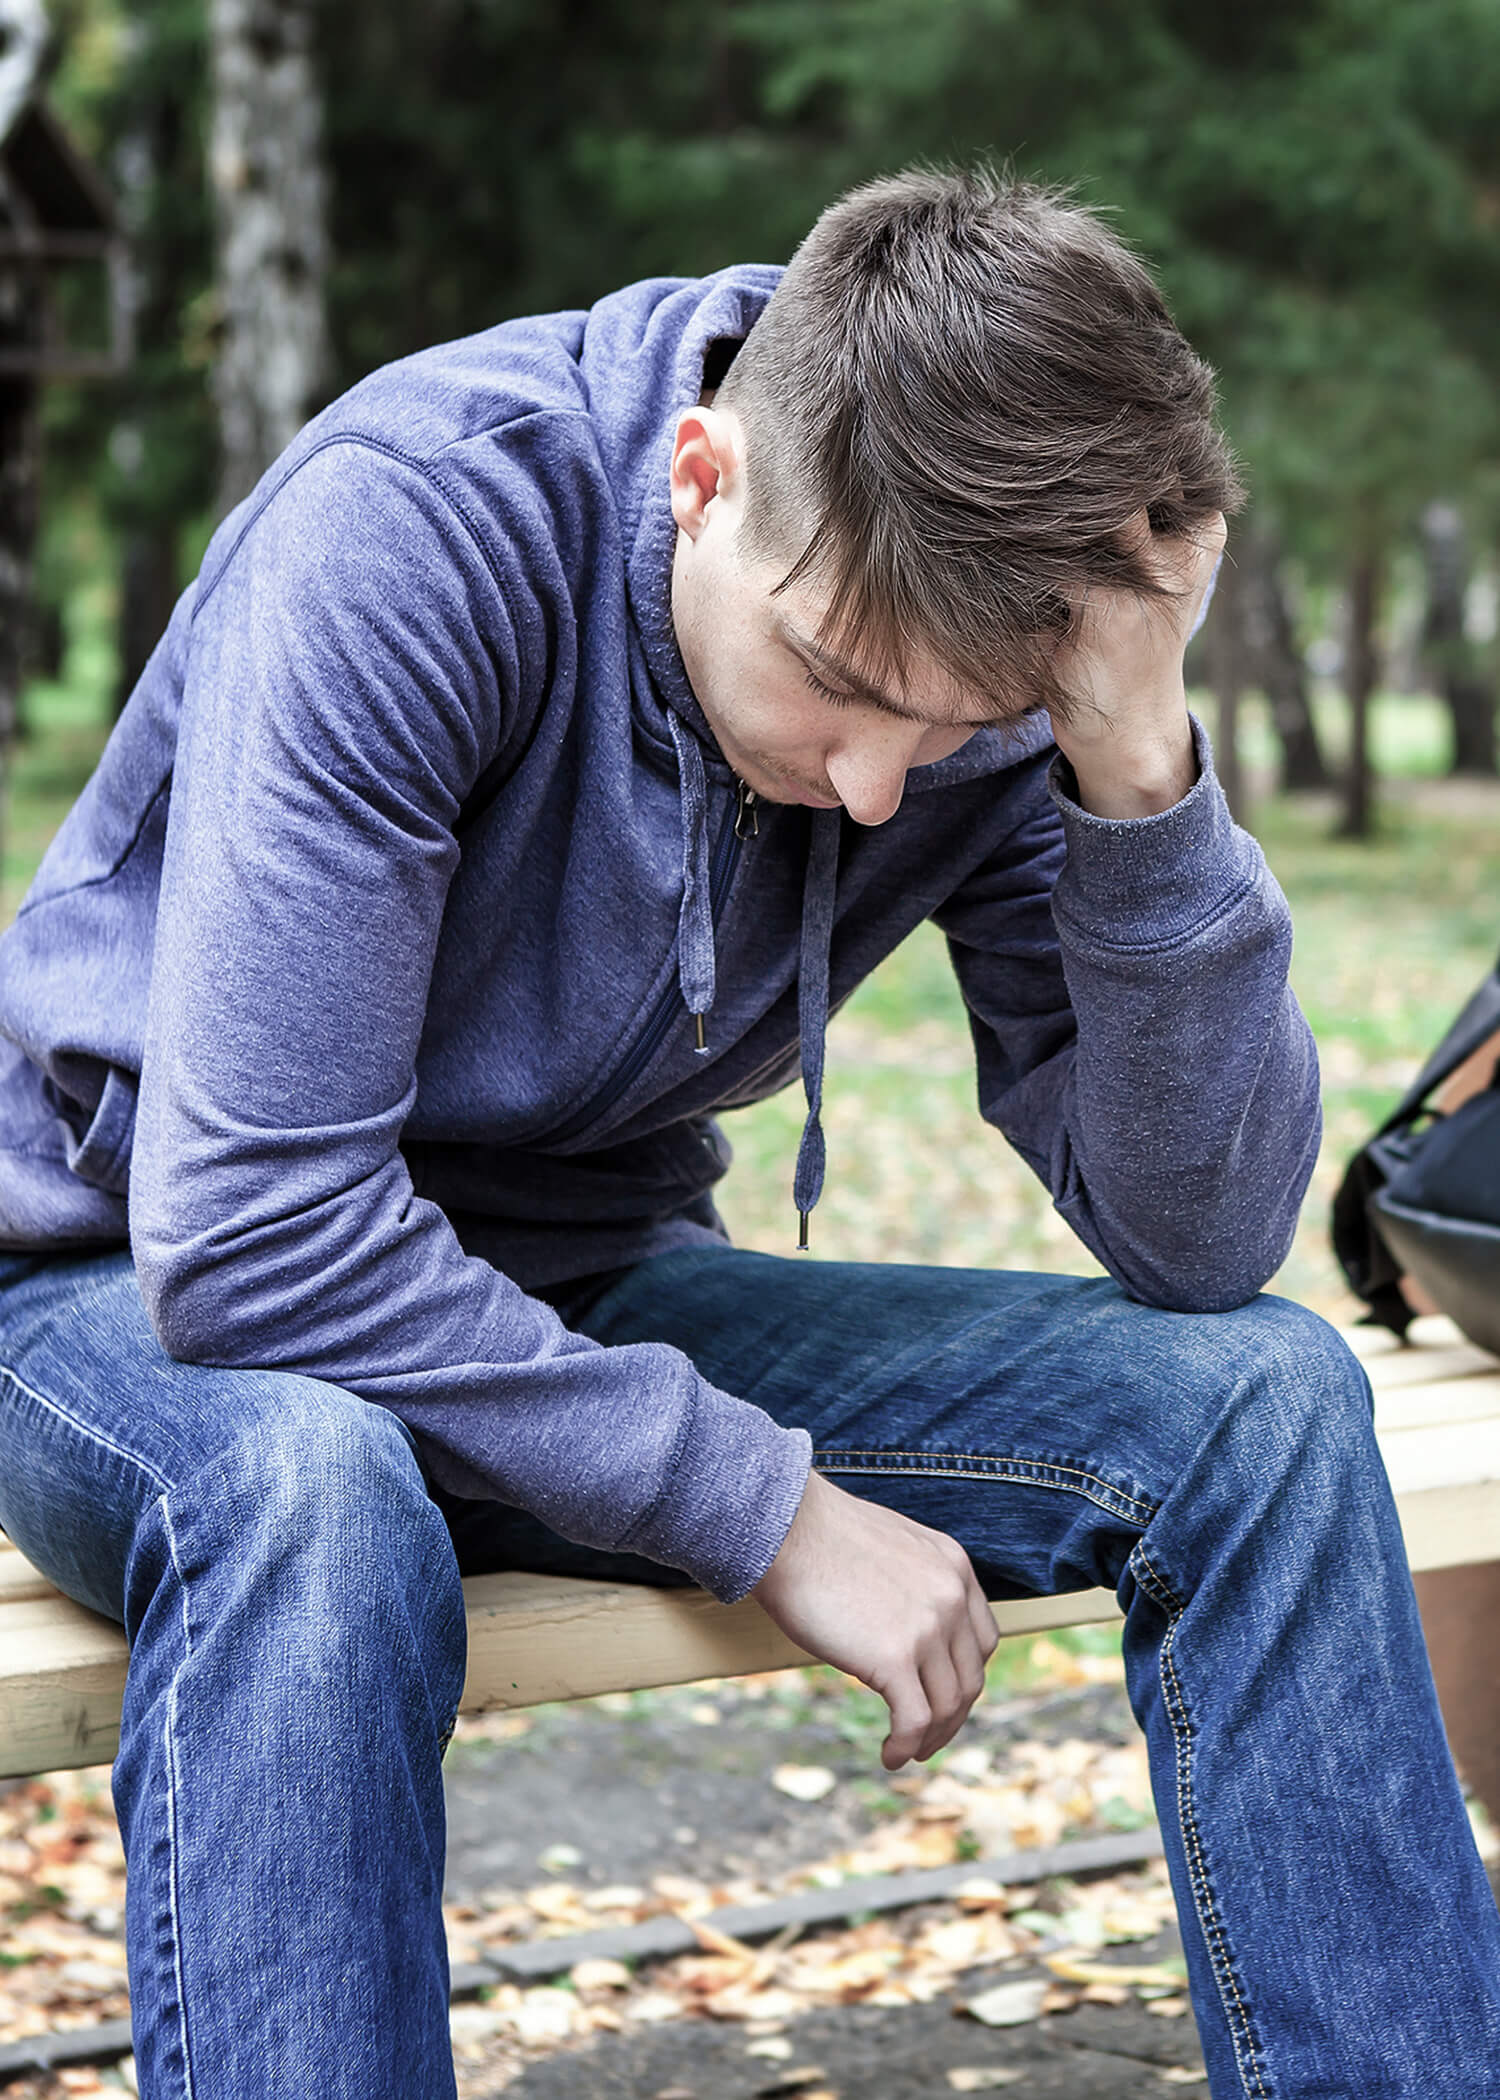 Image of a young man sitting on a bench with his hand running through his hair. This image illustrates the loneliness that dealing with suicidal thoughts can bring. Meeting with a DBT therapist to reduce suicidal thoughts in Los Angeles, CA can help. | 90266 | 90505